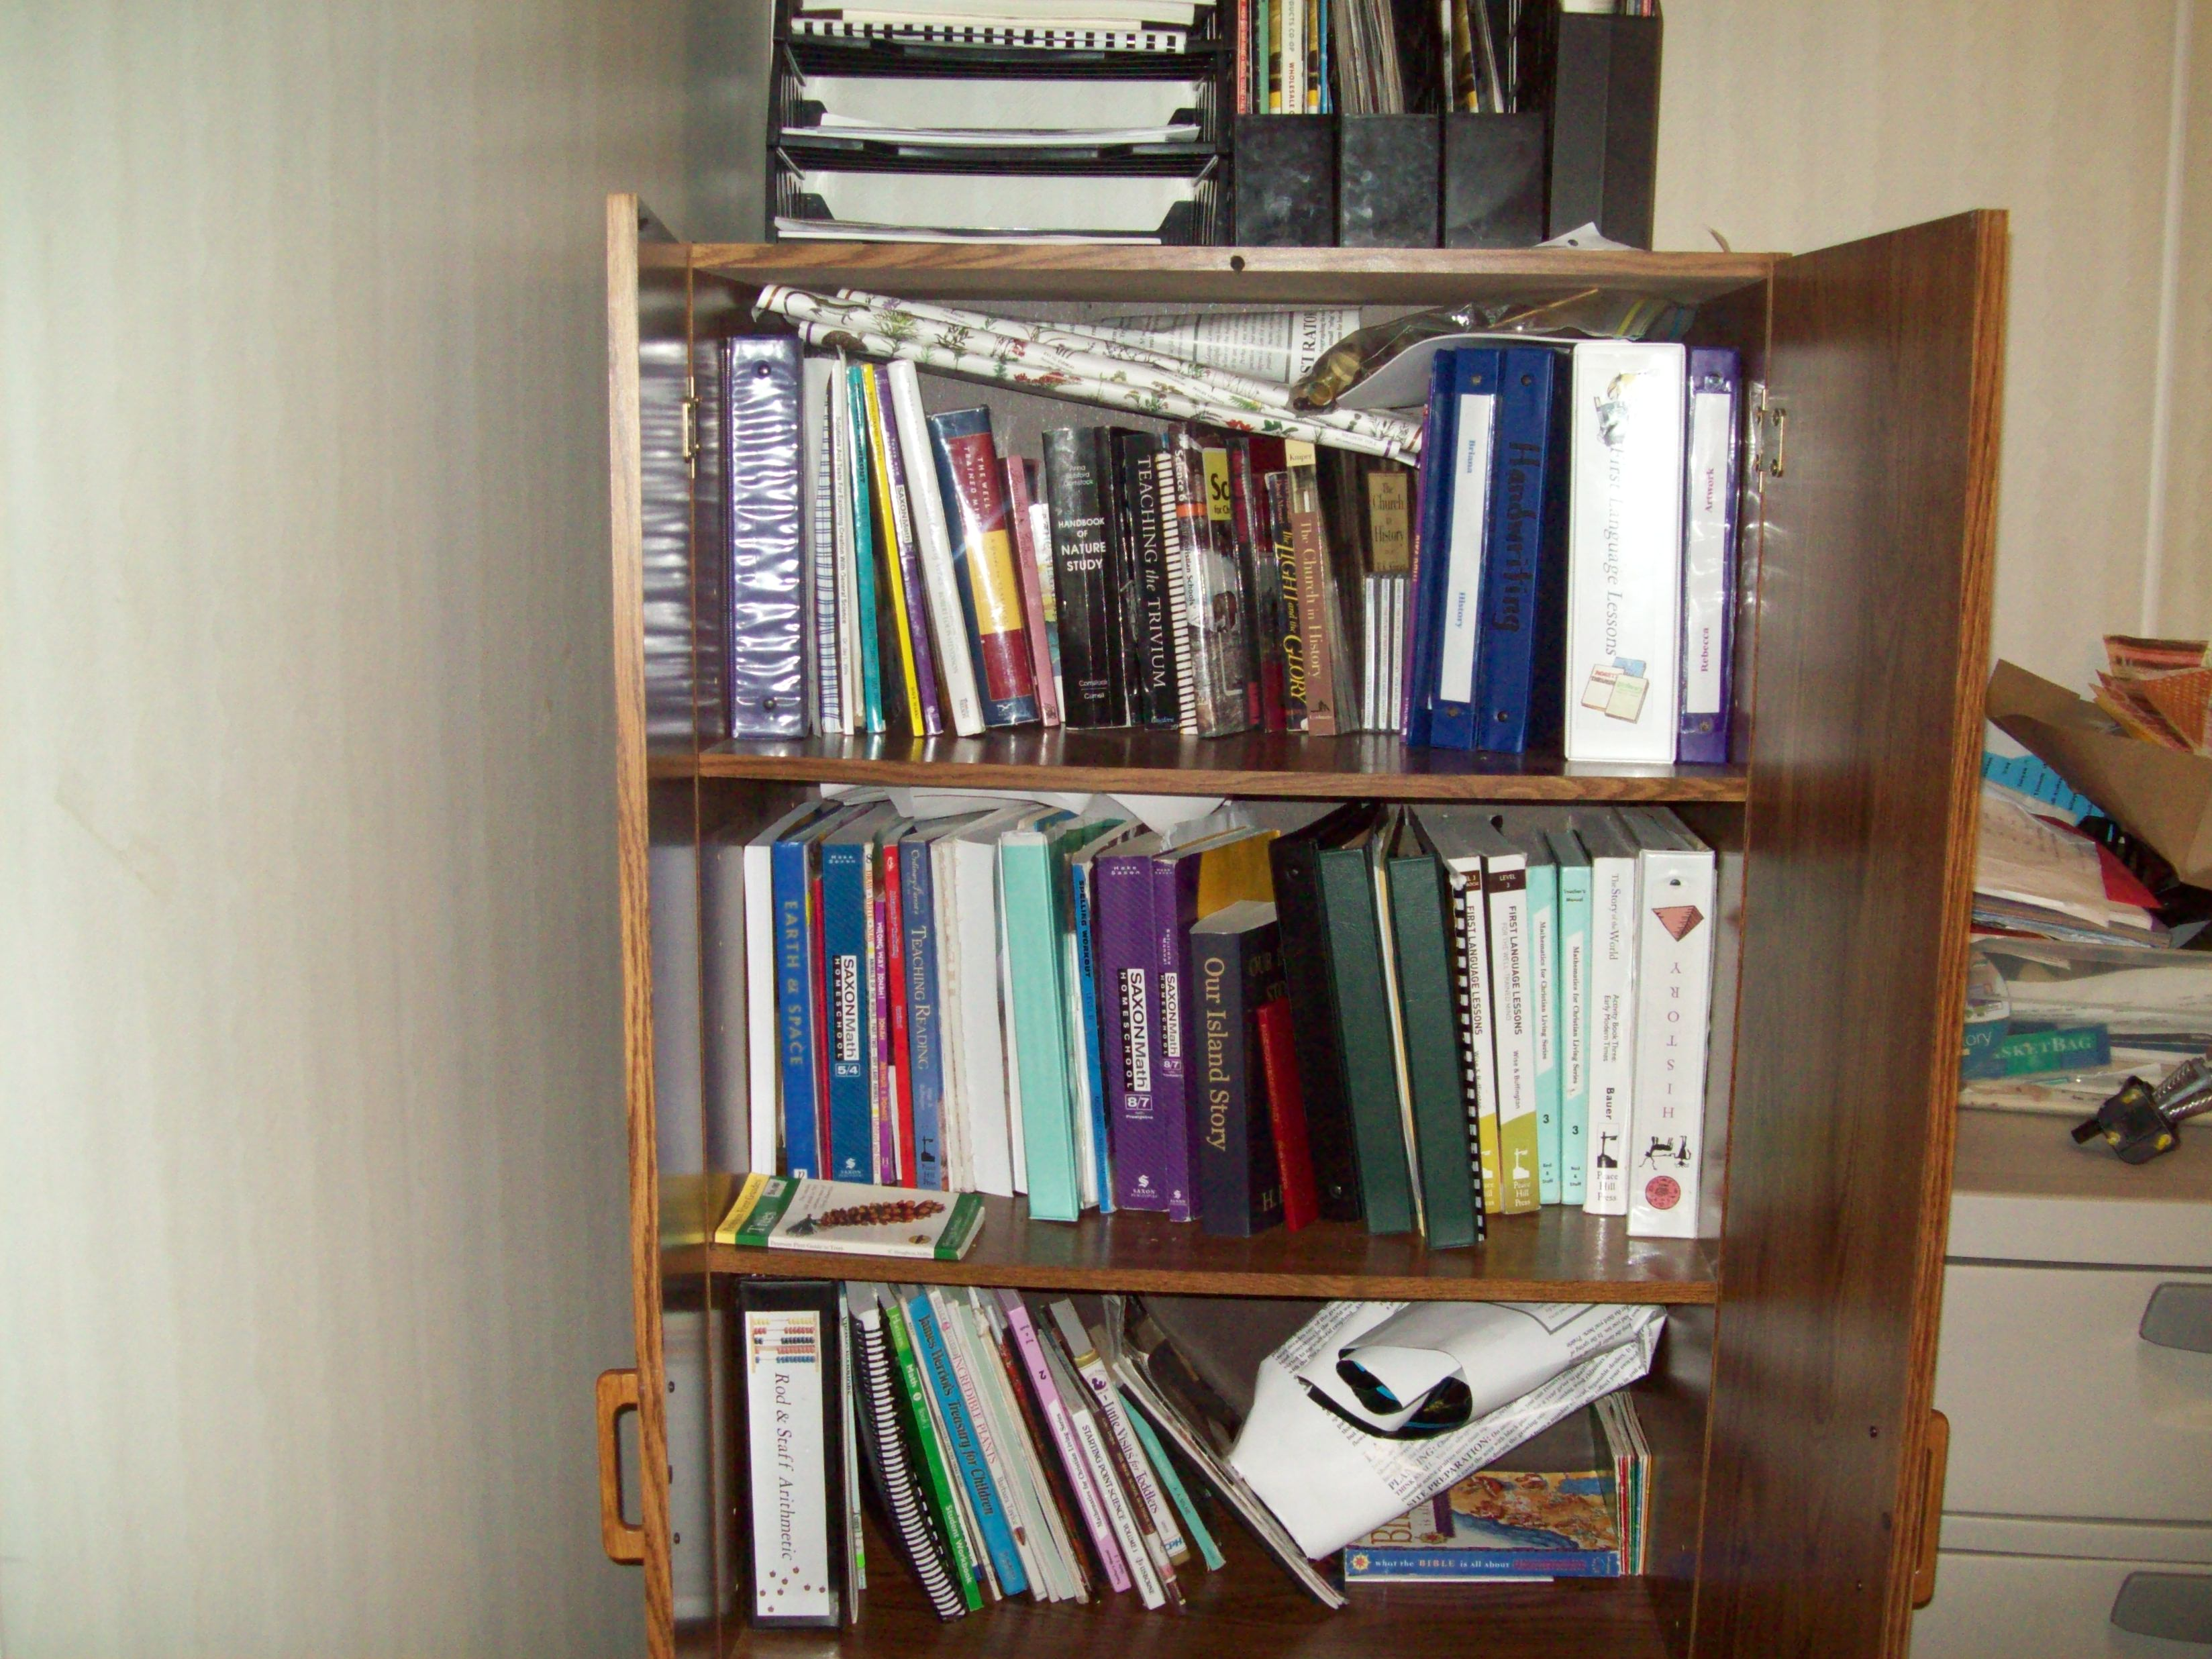 Books, functioning as school books, in general state of disorganization.